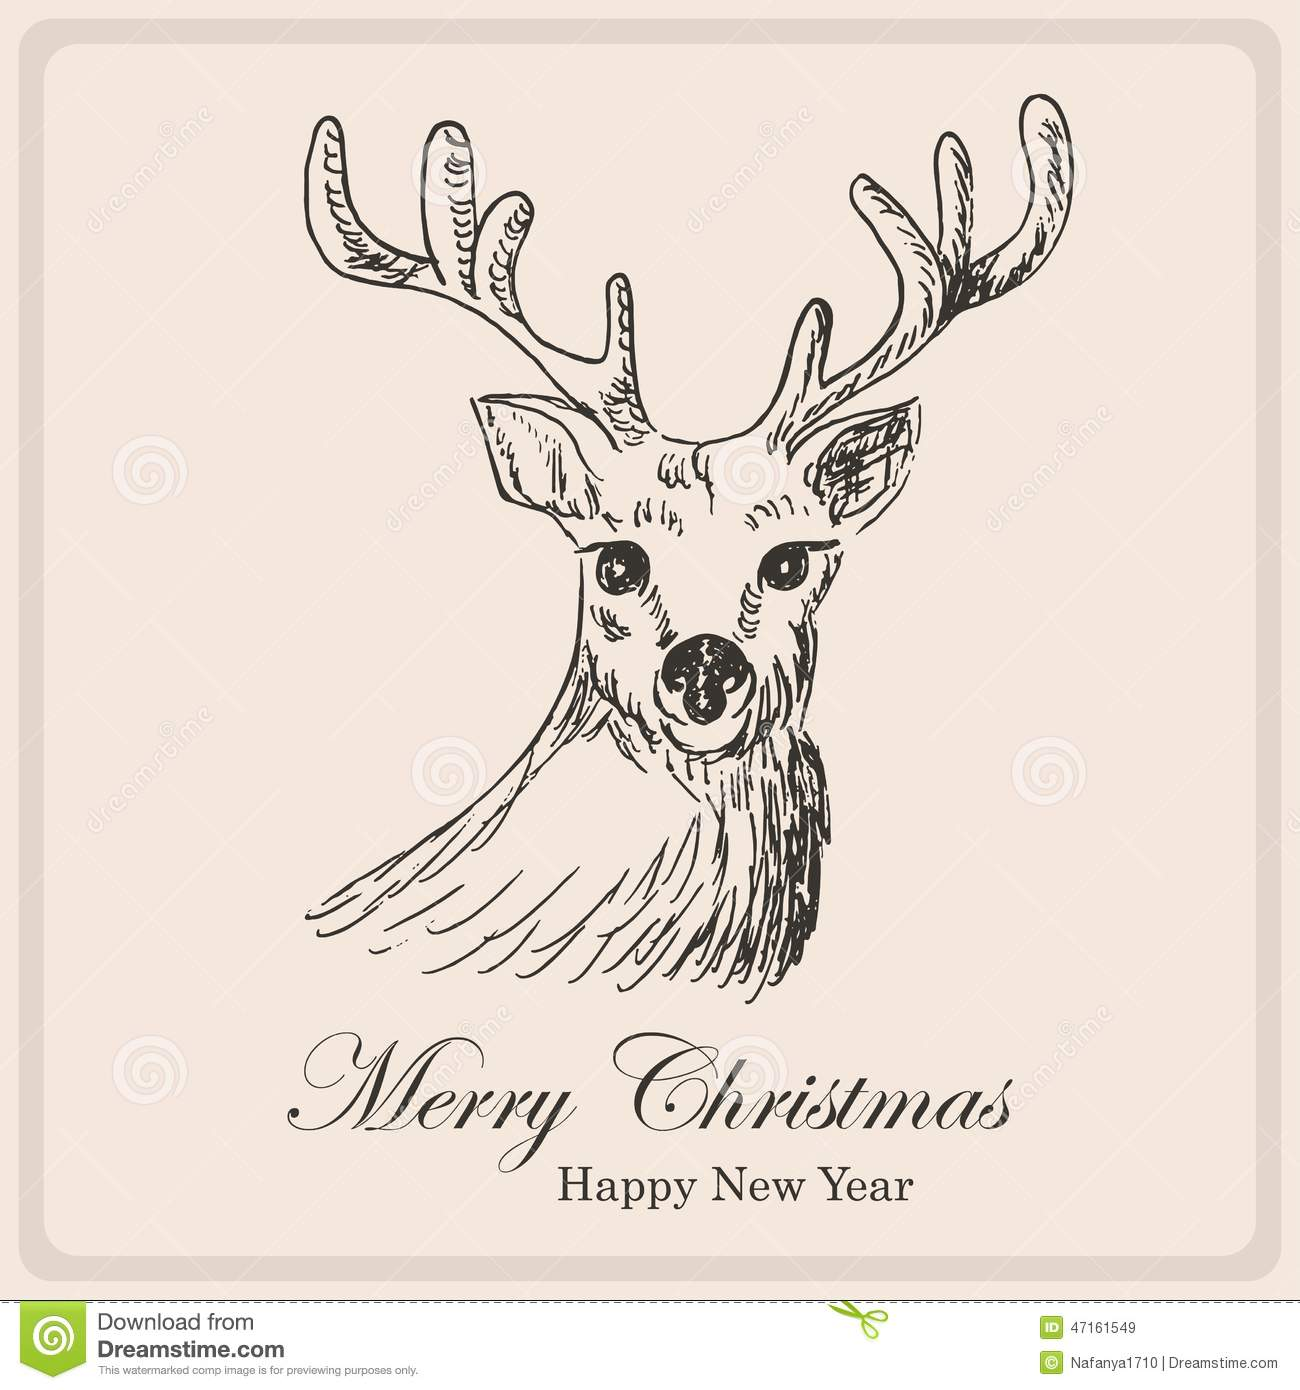 Reindeer Christmas Cards Drawings.Christmas Card With Deer Hand Drawing Illustration Stock